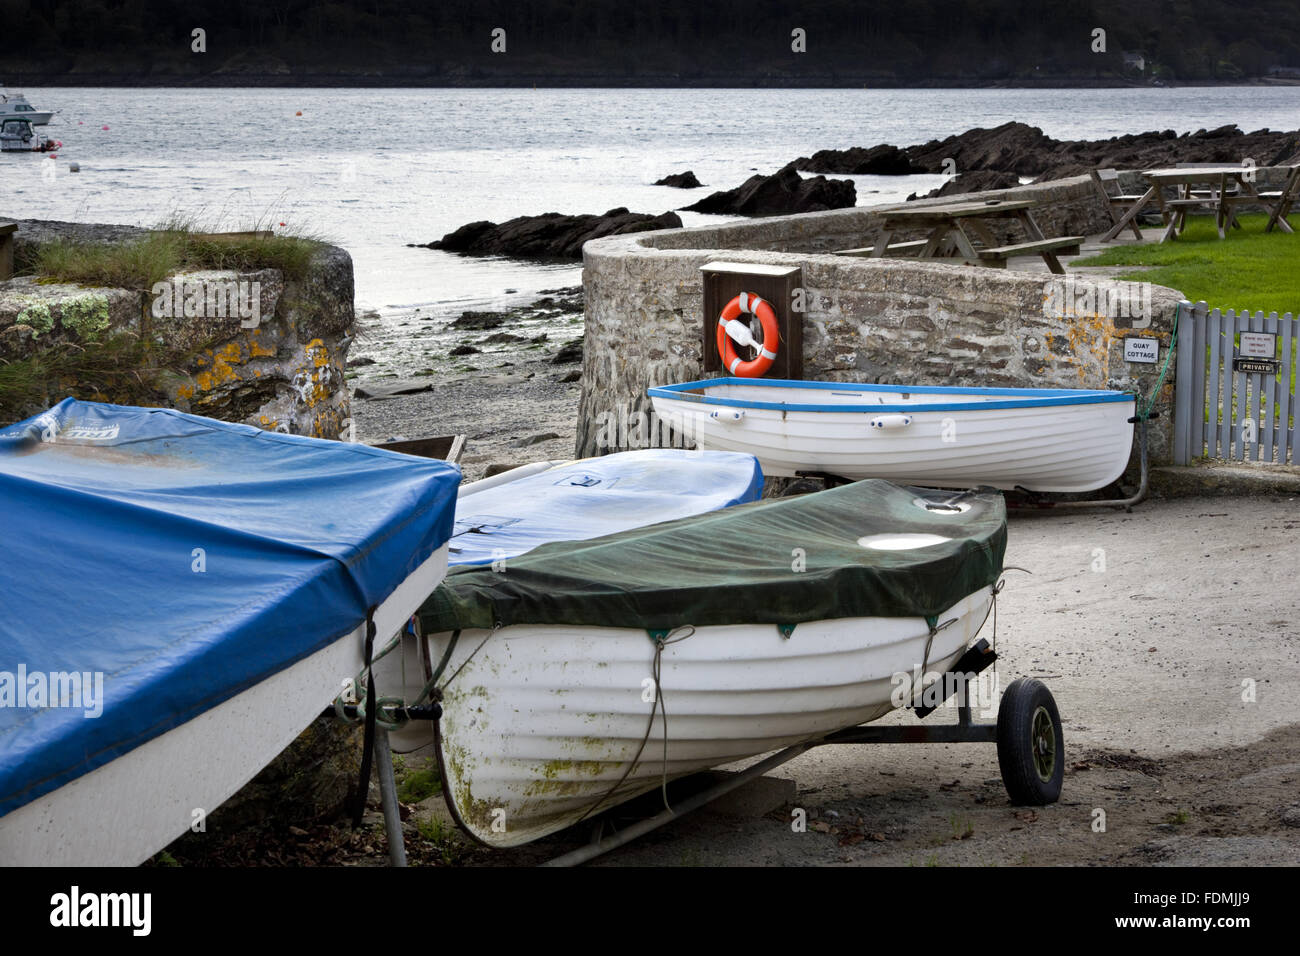 Boats on shore in the hamlet of Durgan, beside the Helford River, South Cornwall. - Stock Image